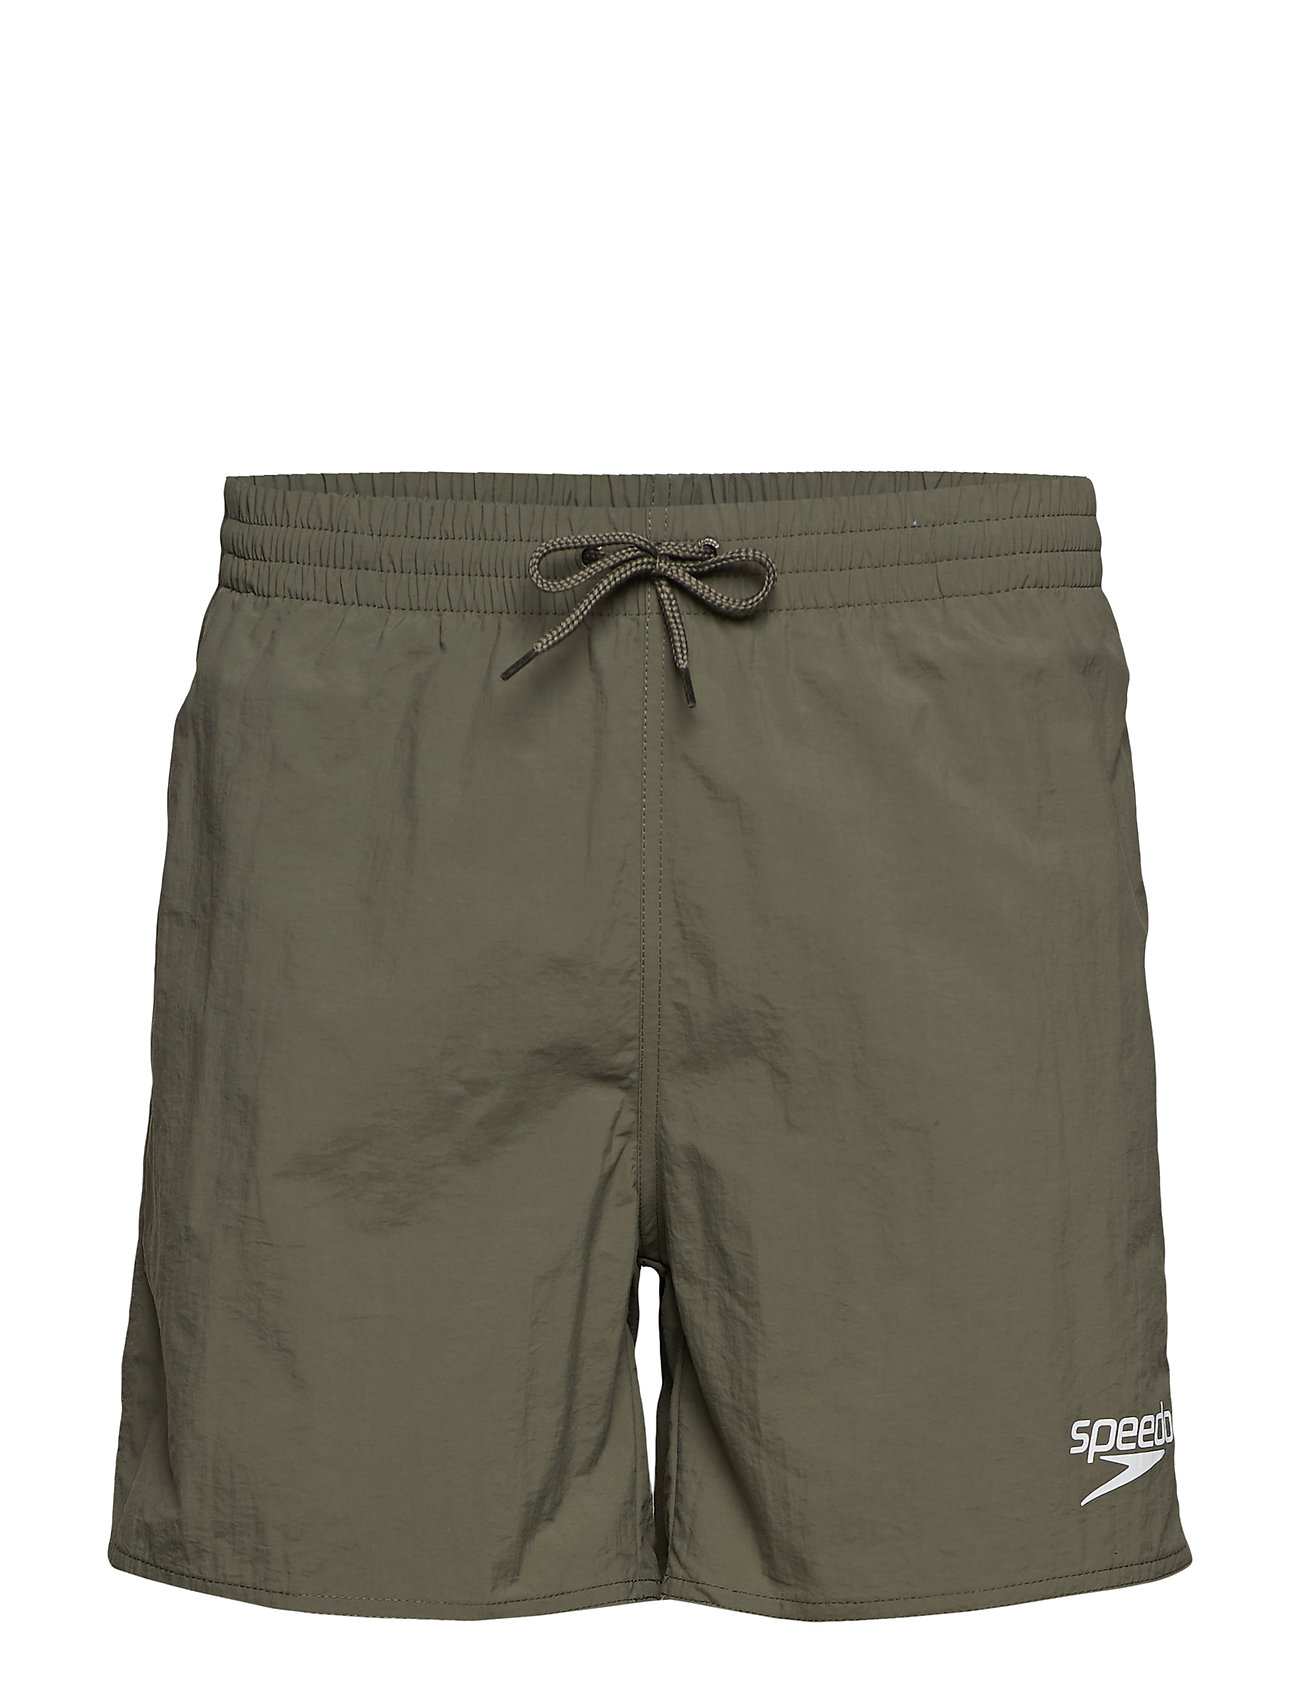 Image of Essentials 16'''' Watershort Badeshorts Grøn Speedo (3491487389)